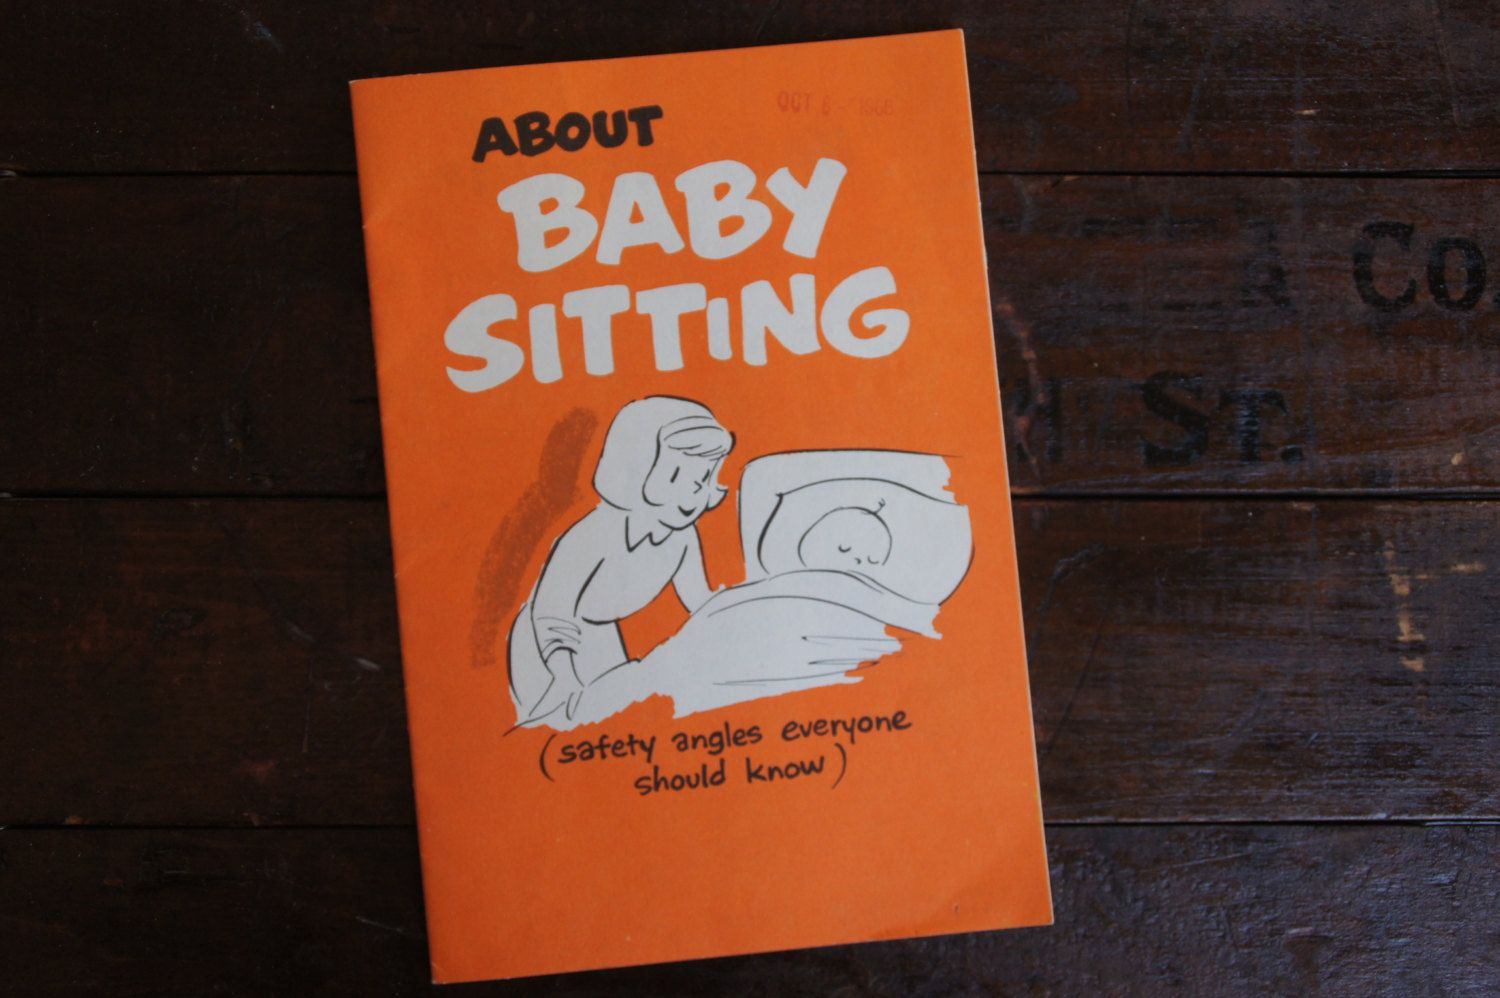 About Babysitting safety angles everyone should know